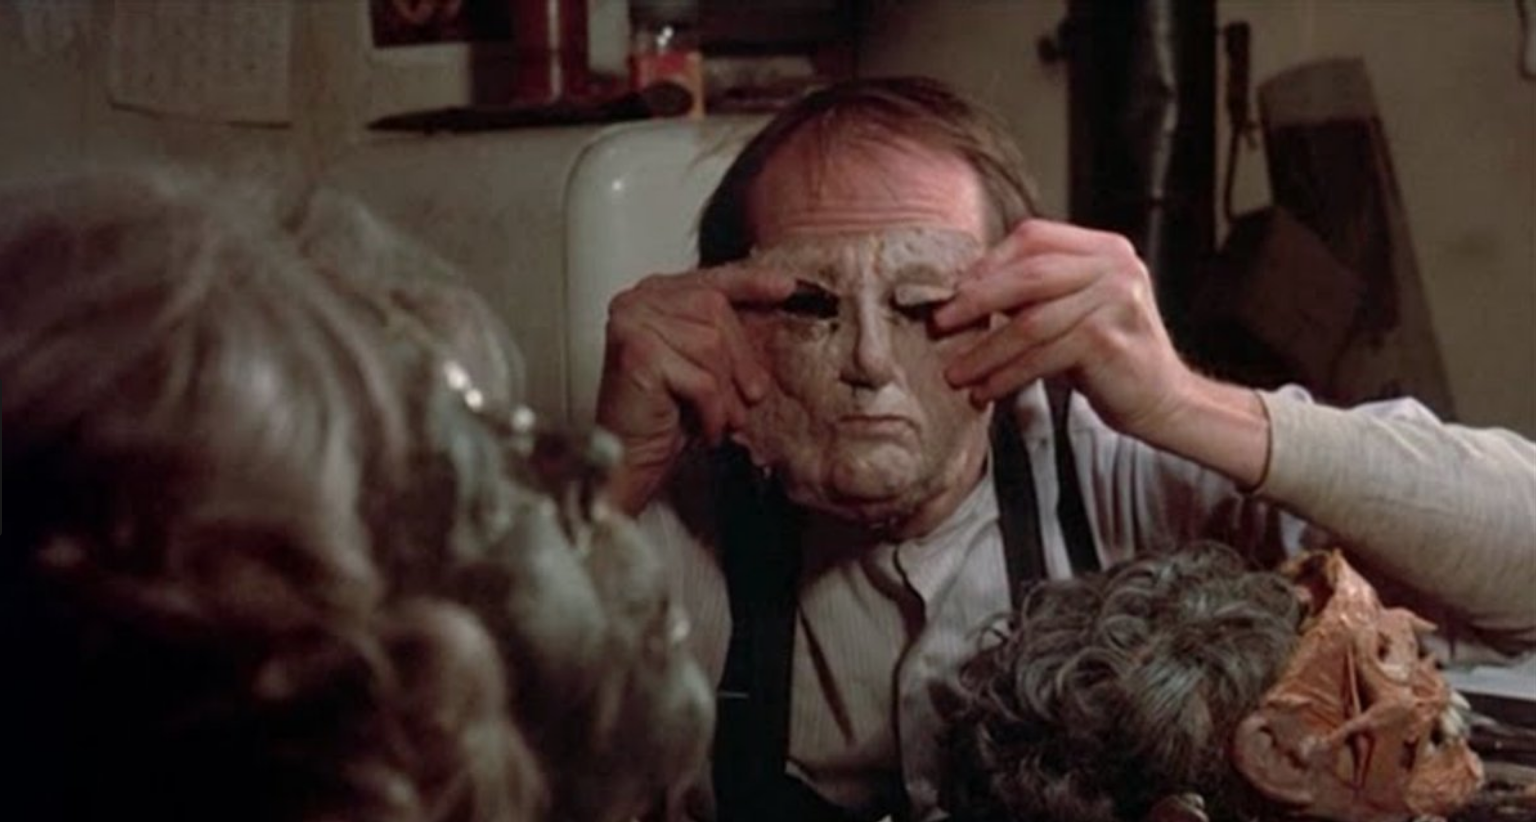 44. Gillen, Jeff and Alan Ormsby, Directors.  Deranged: Confessions of a Necrophile.  1974.